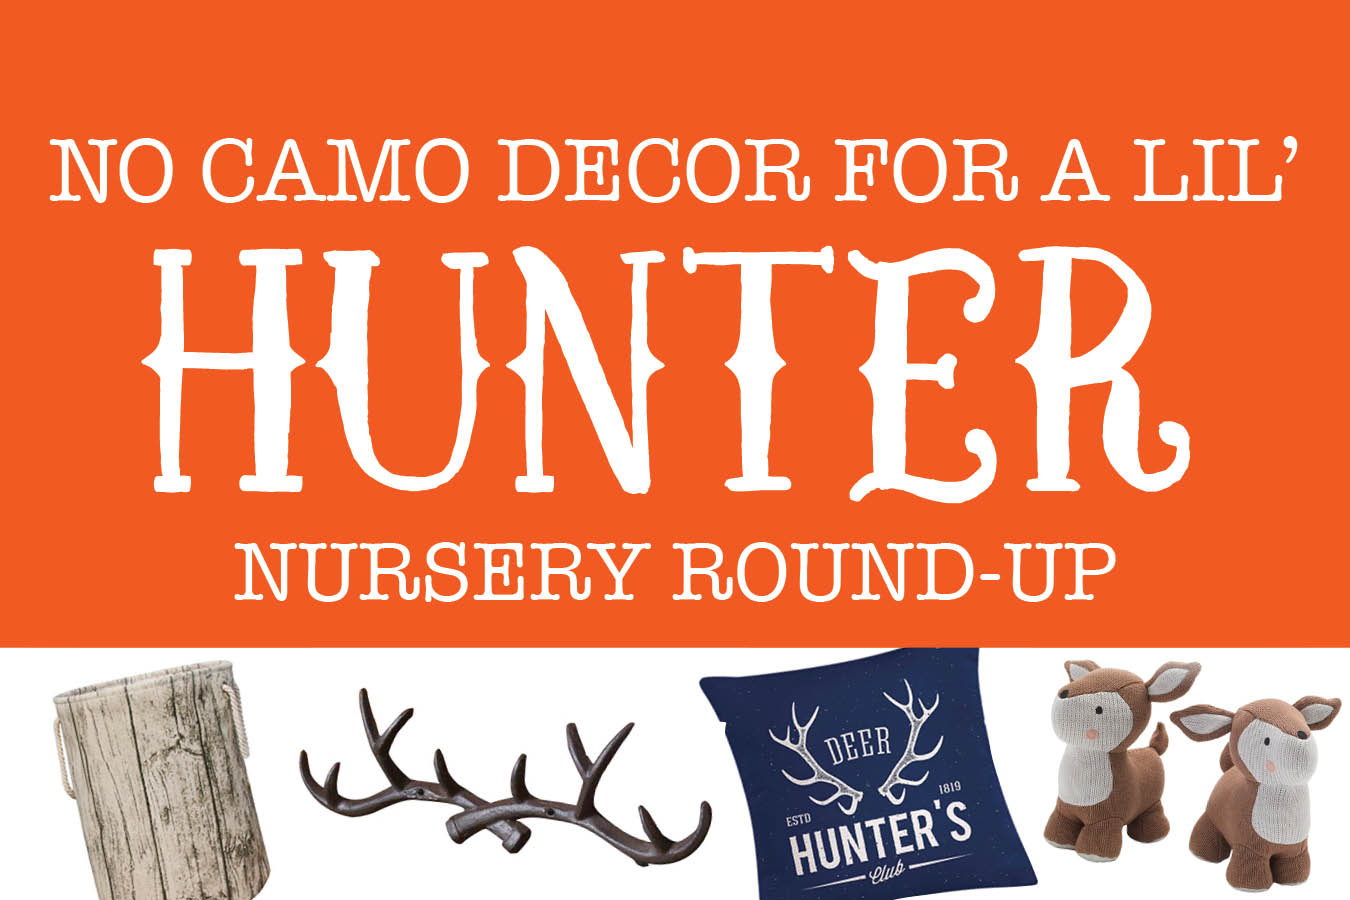 Little Hunter Nursery Round Up – No Camo Decor Ideas!